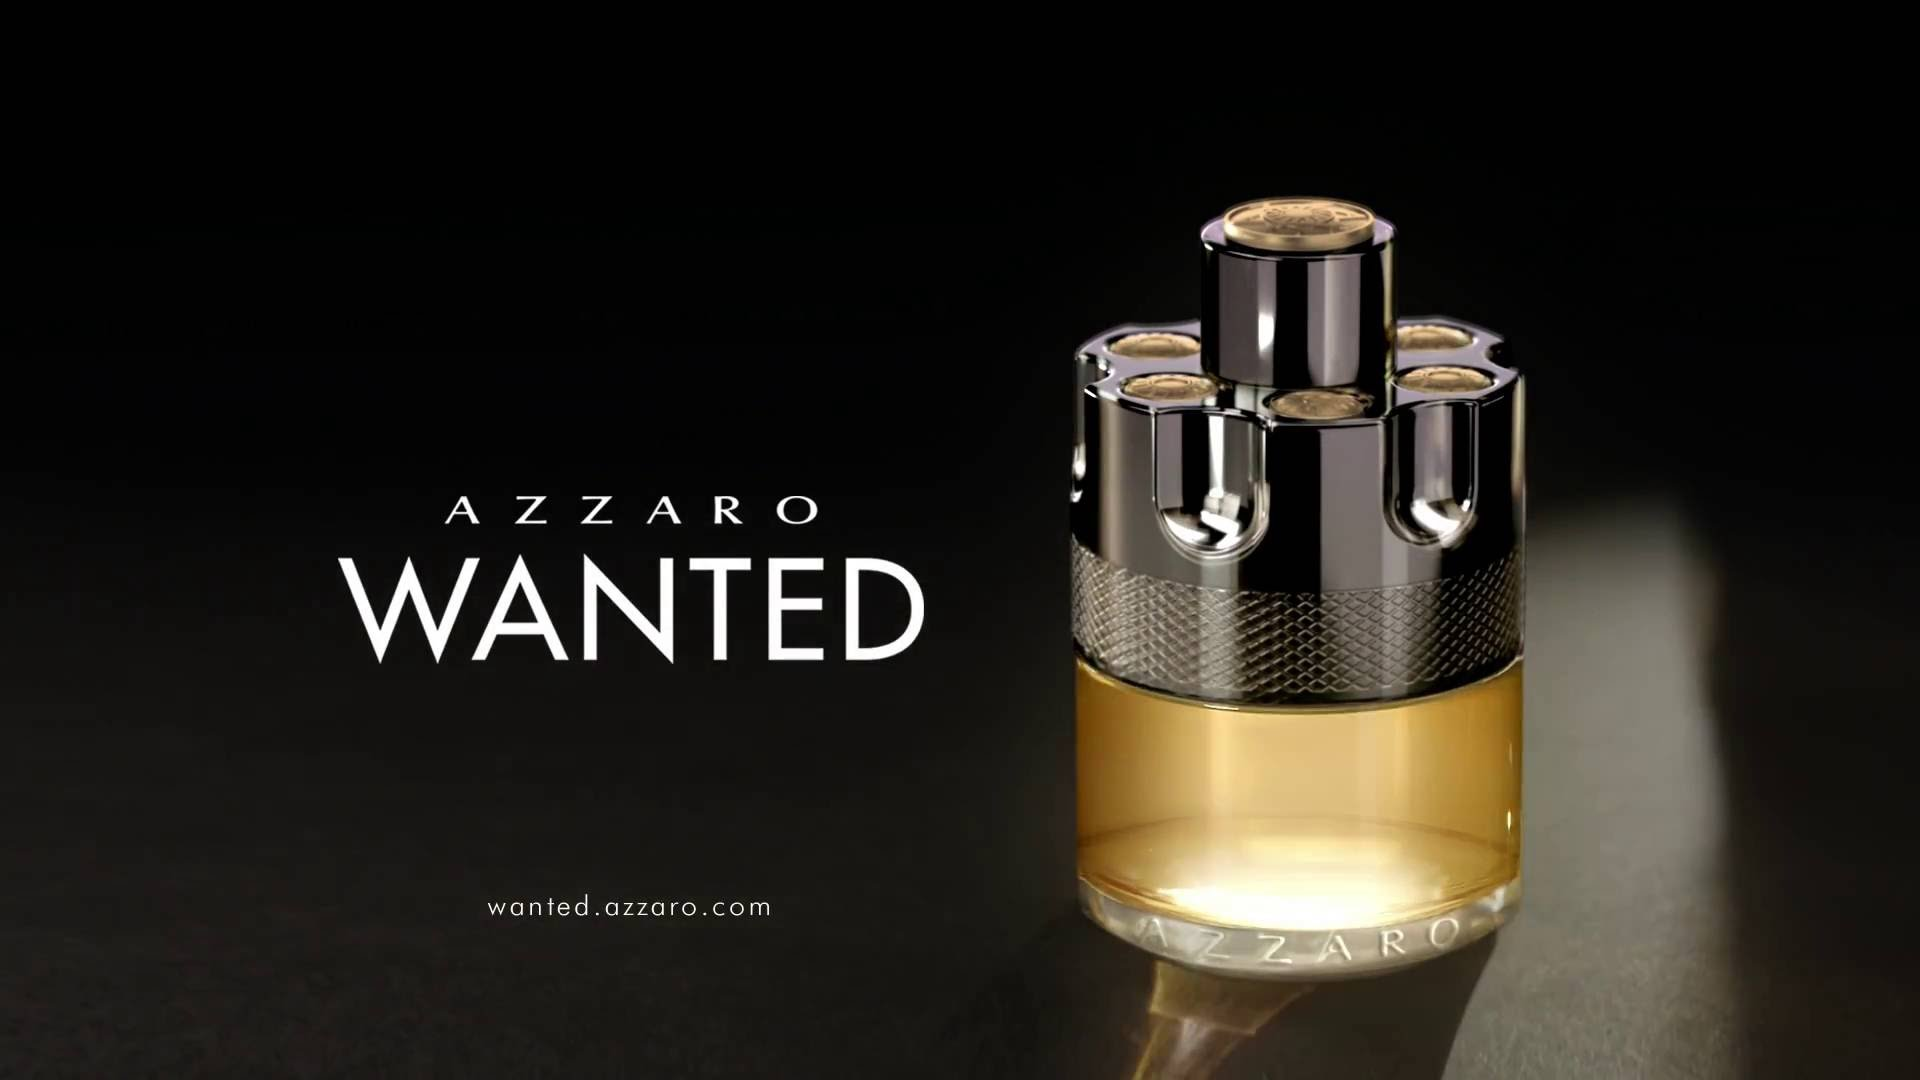 De 100ml Toilette D'azzaro Eau Wanted dxBWoeQCr